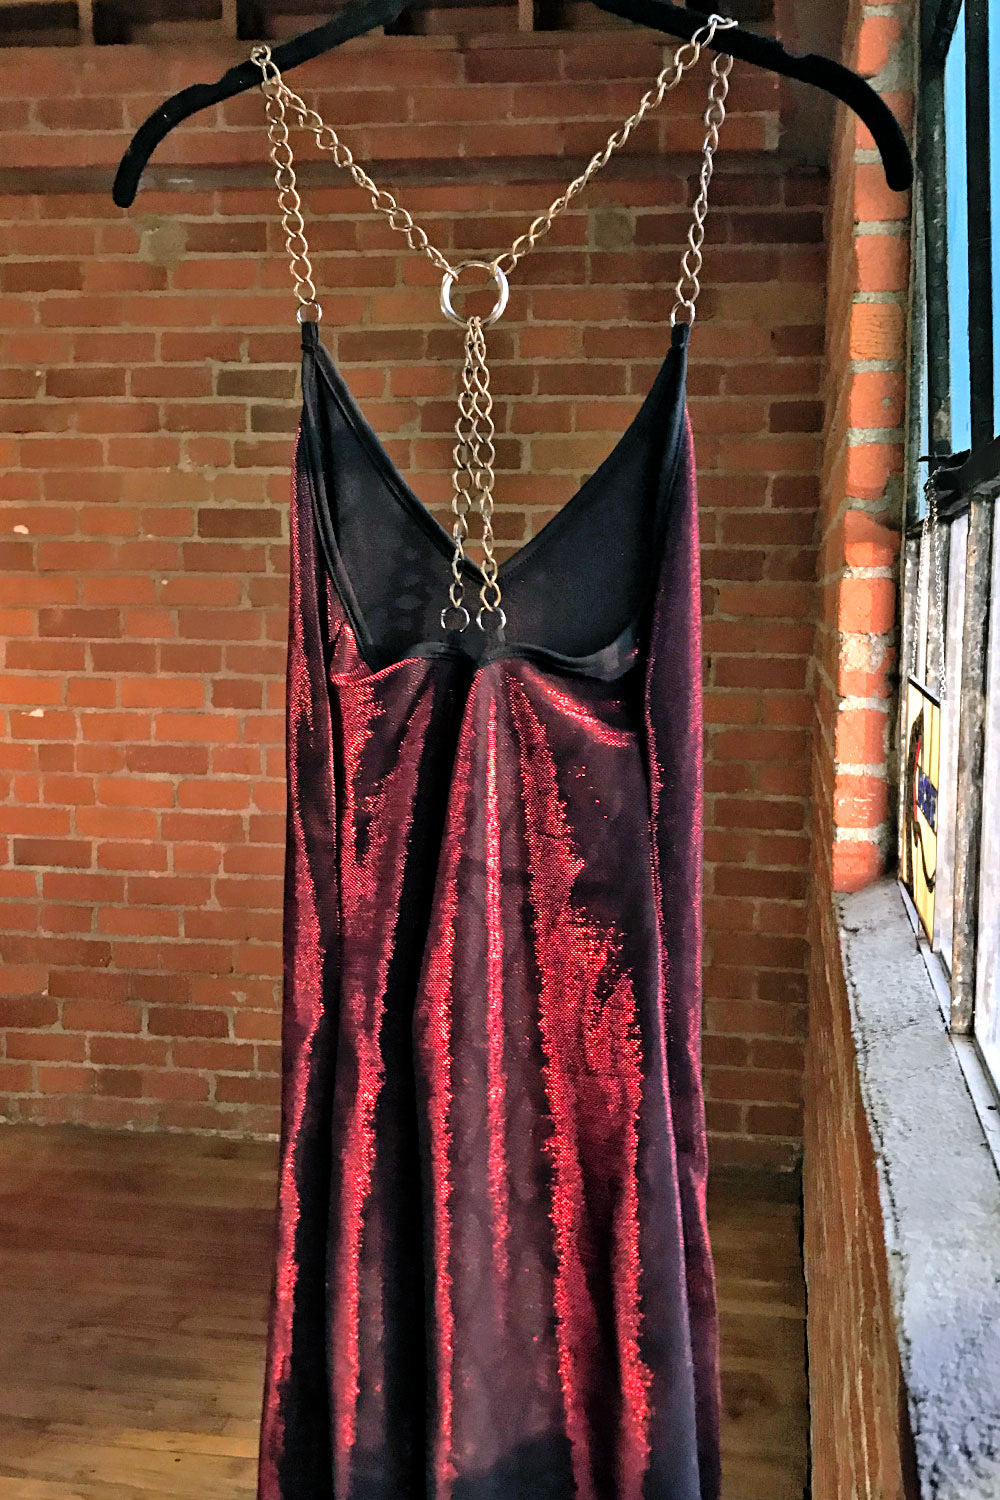 The Angelina Chain Dress・Metallic Red, Dresses, BACKBITE, BACKBITE